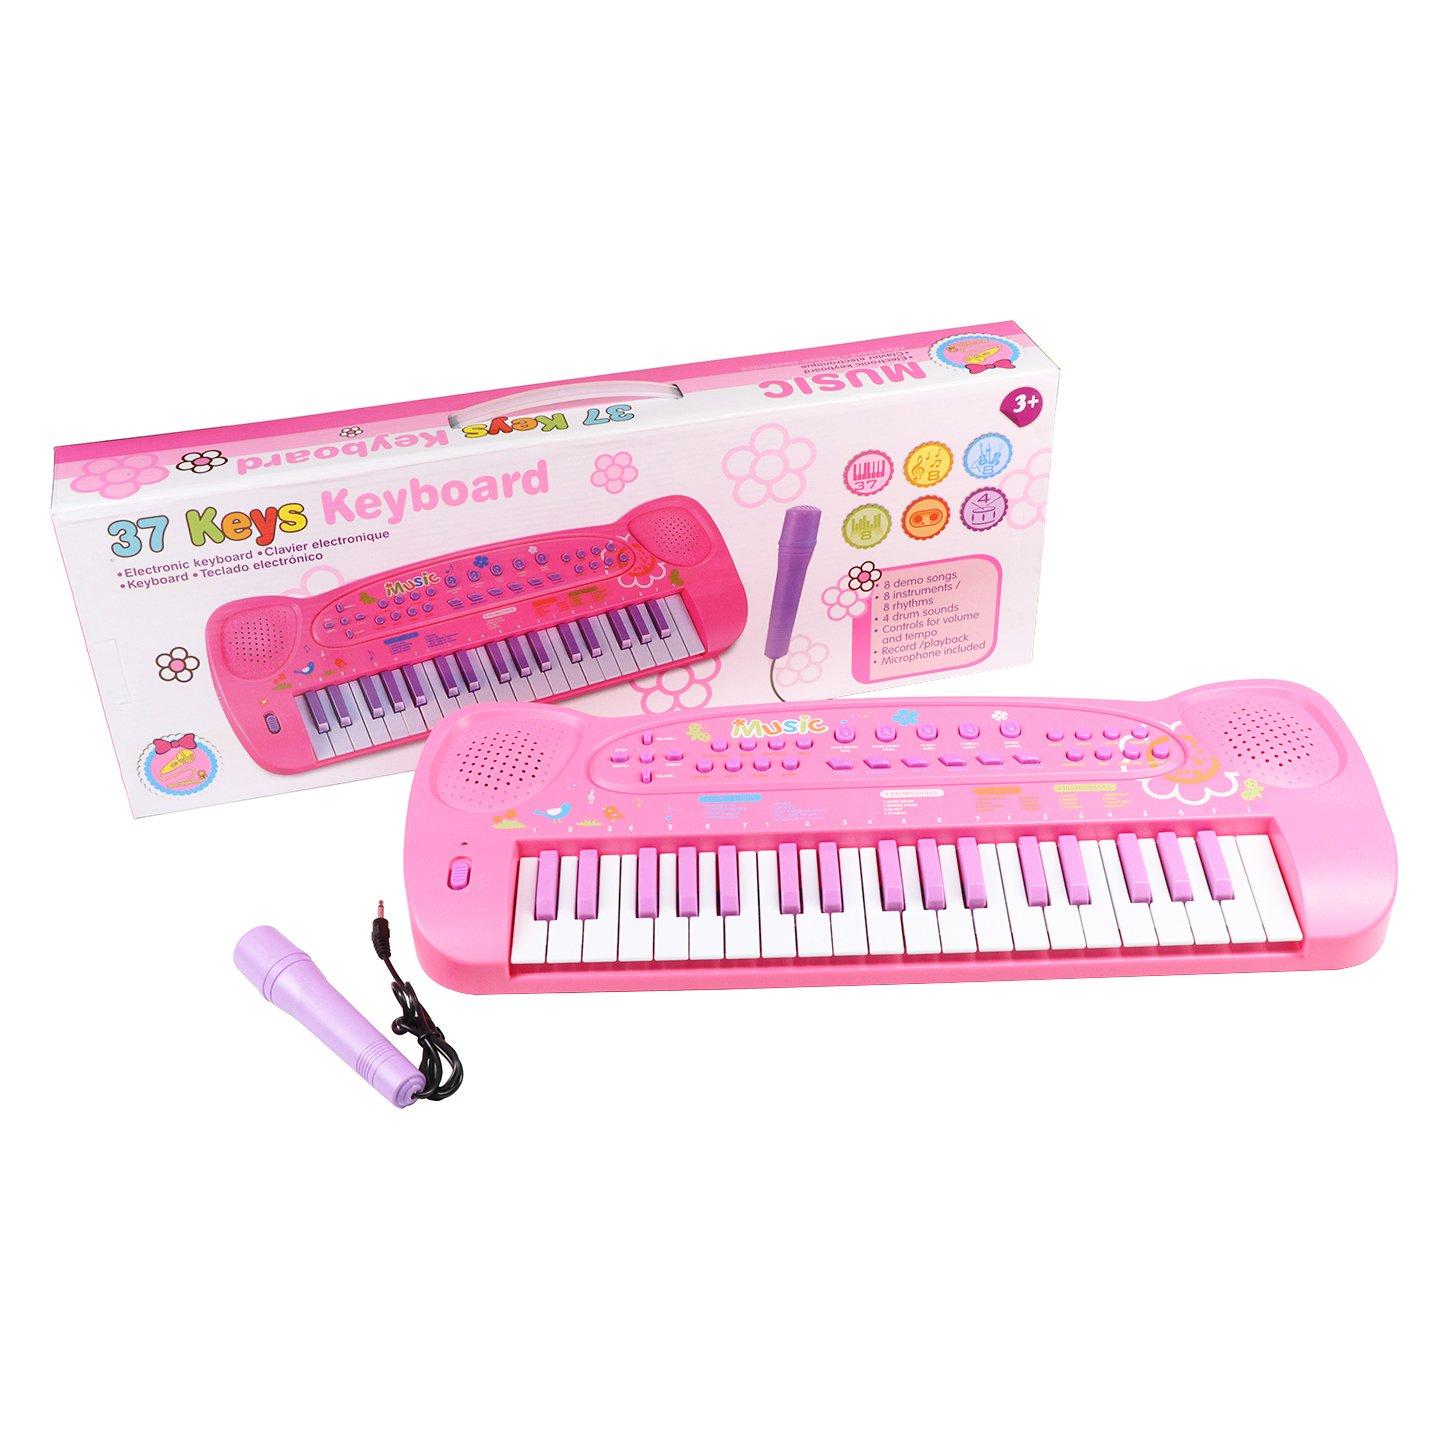 ... Keyboard for Kids Multifunction Portable Piano Electronic Keyboard Music Instrument for Kids Early Learning Educational Toy (Pink): Musical Instruments